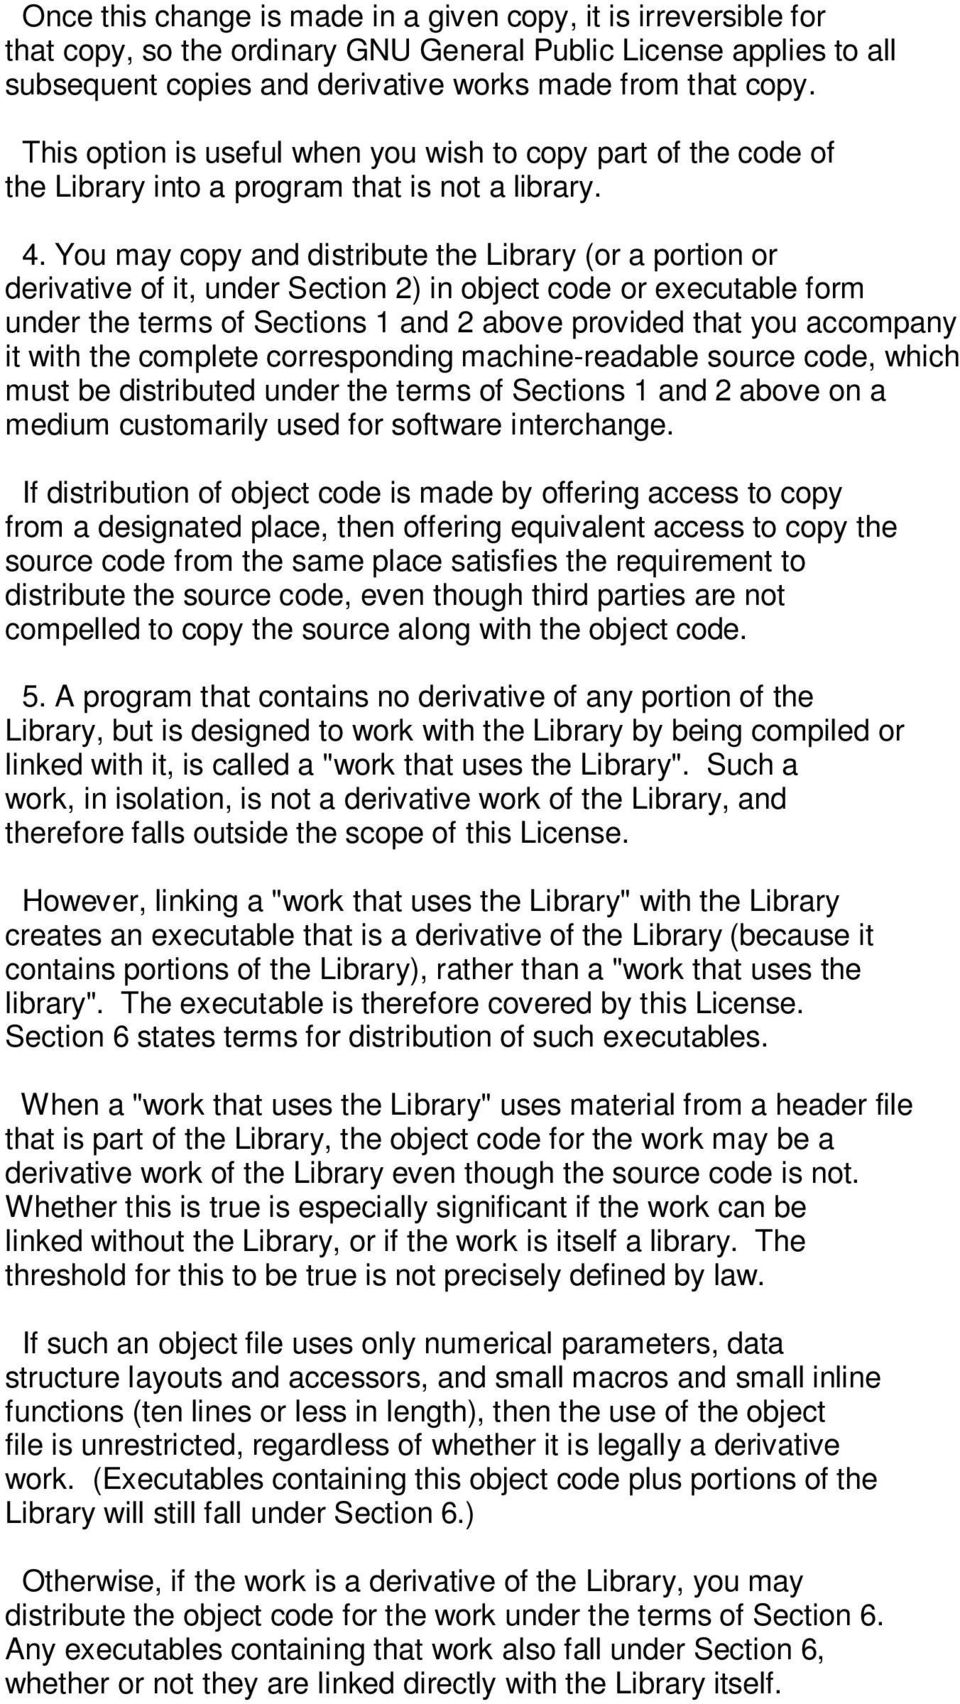 You may copy and distribute the Library (or a portion or derivative of it, under Section 2) in object code or executable form under the terms of Sections 1 and 2 above provided that you accompany it